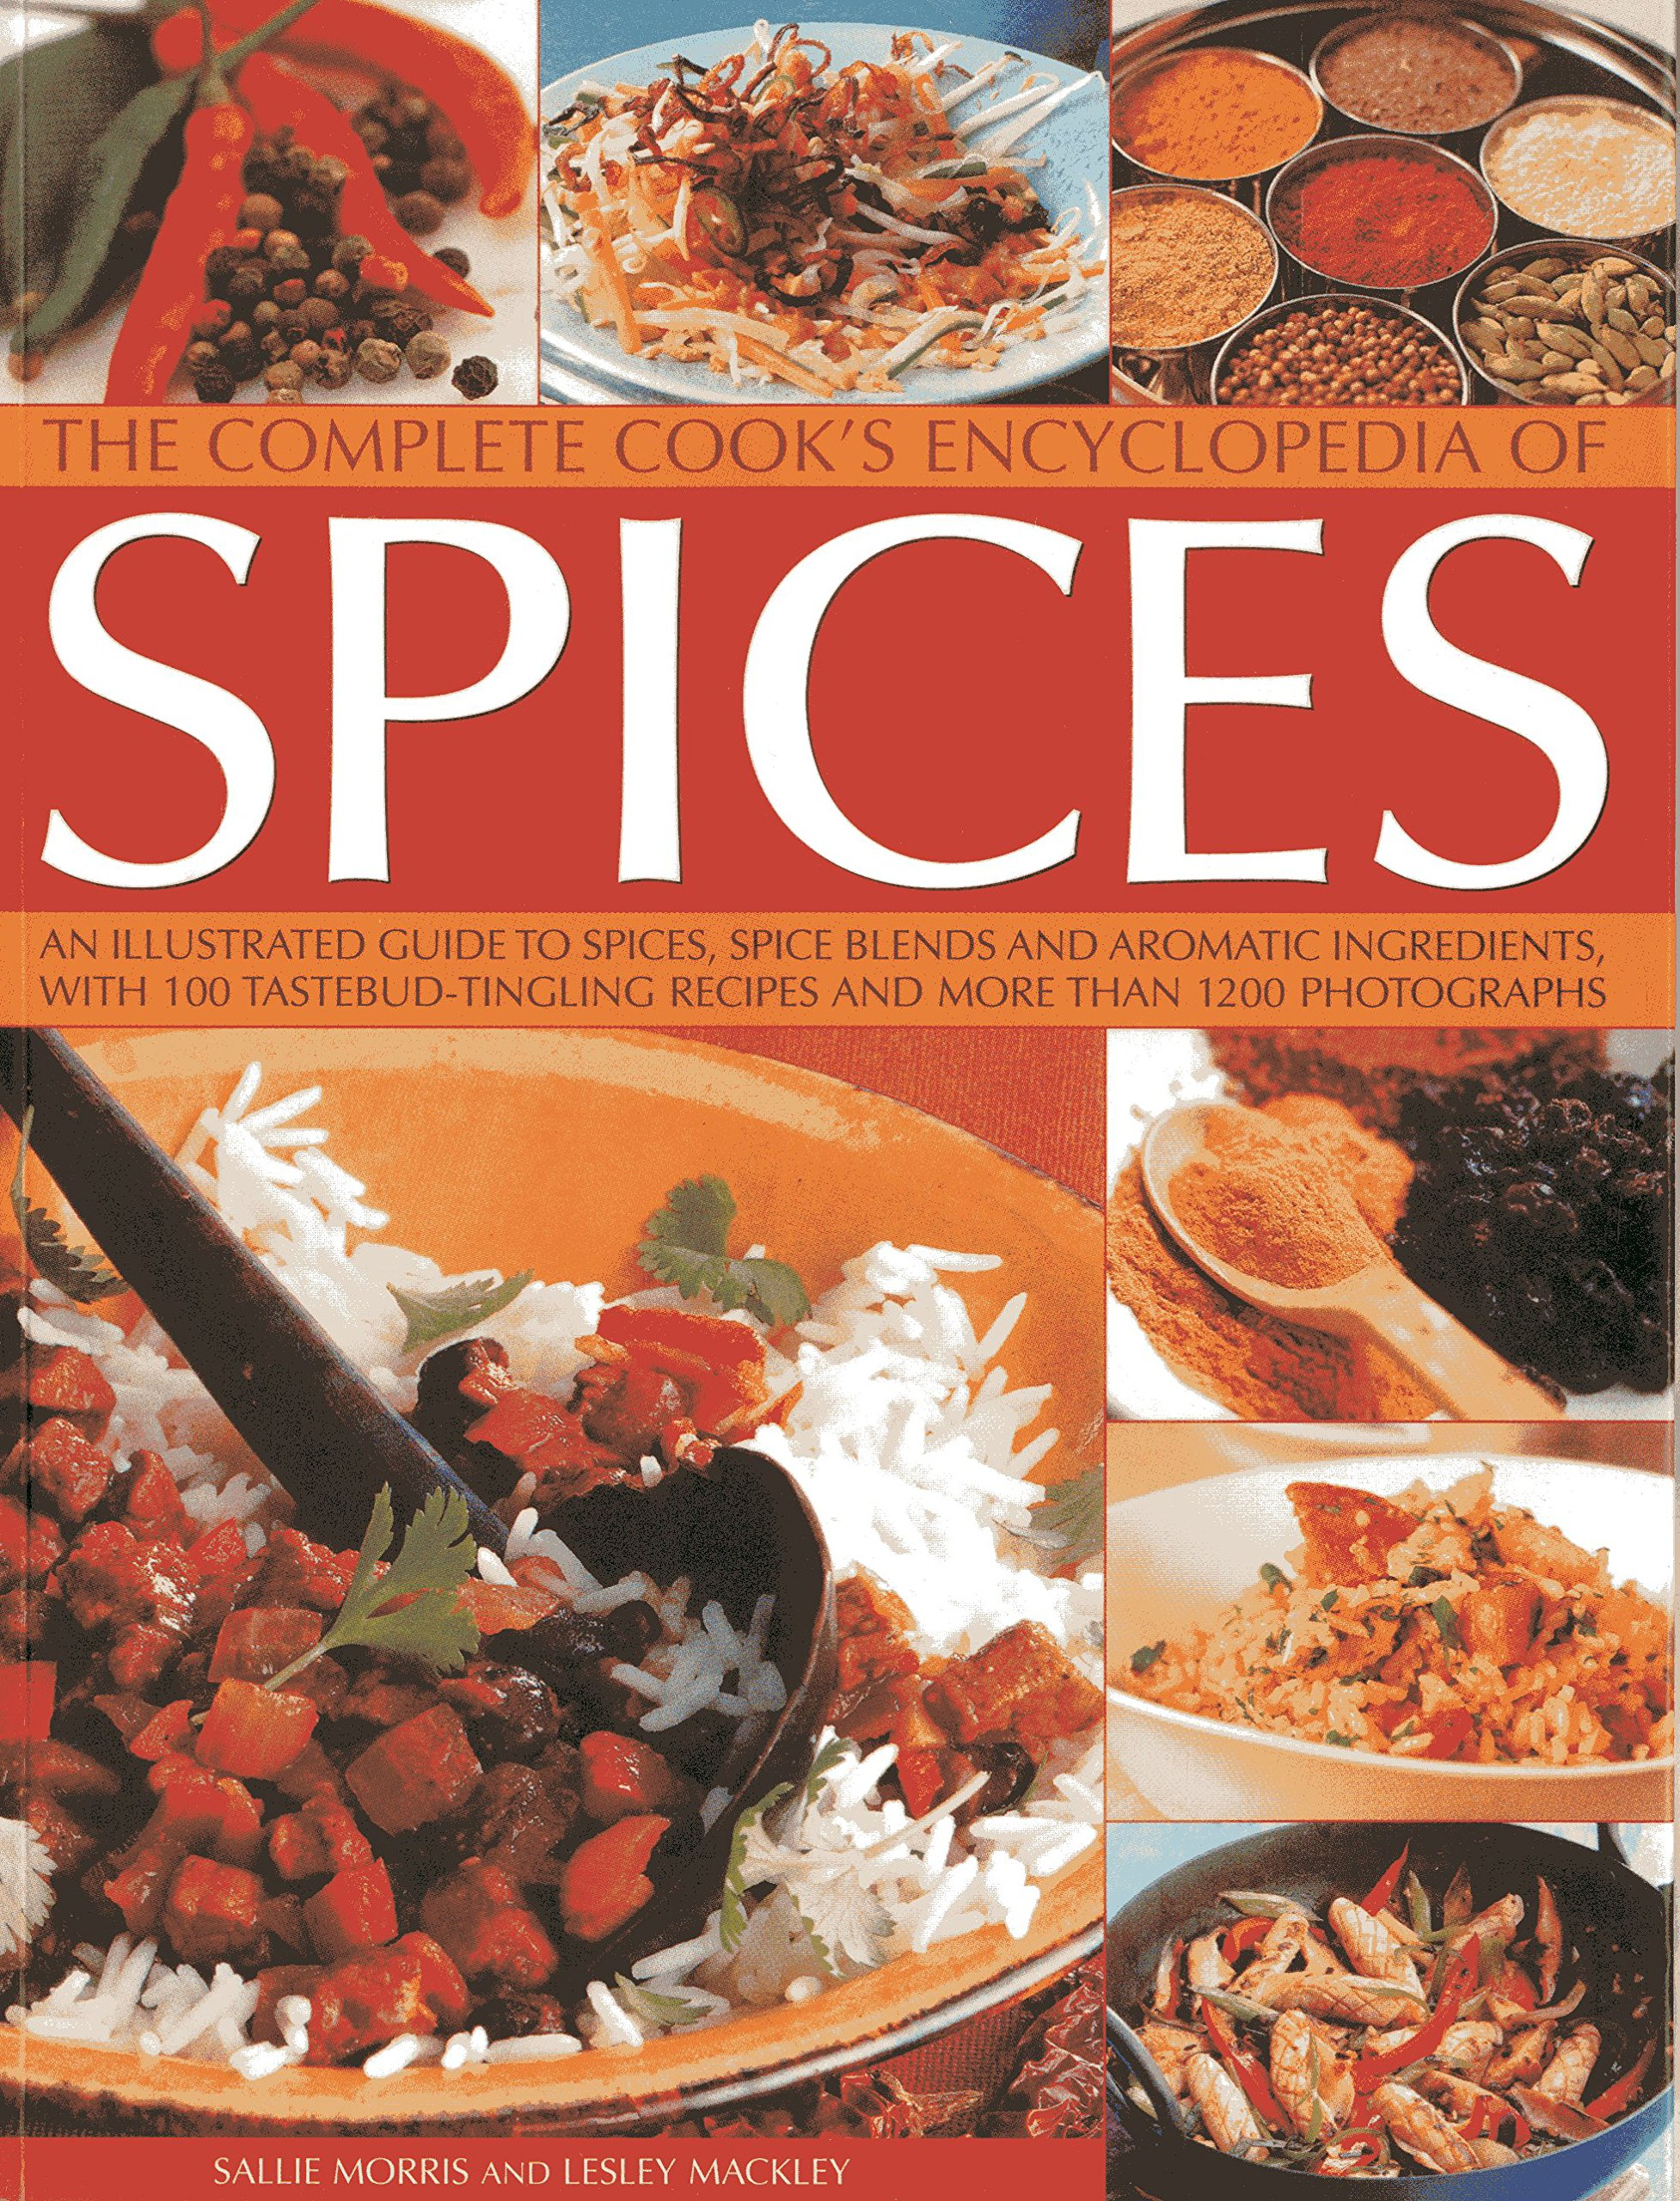 Illustrated Guide to Spice